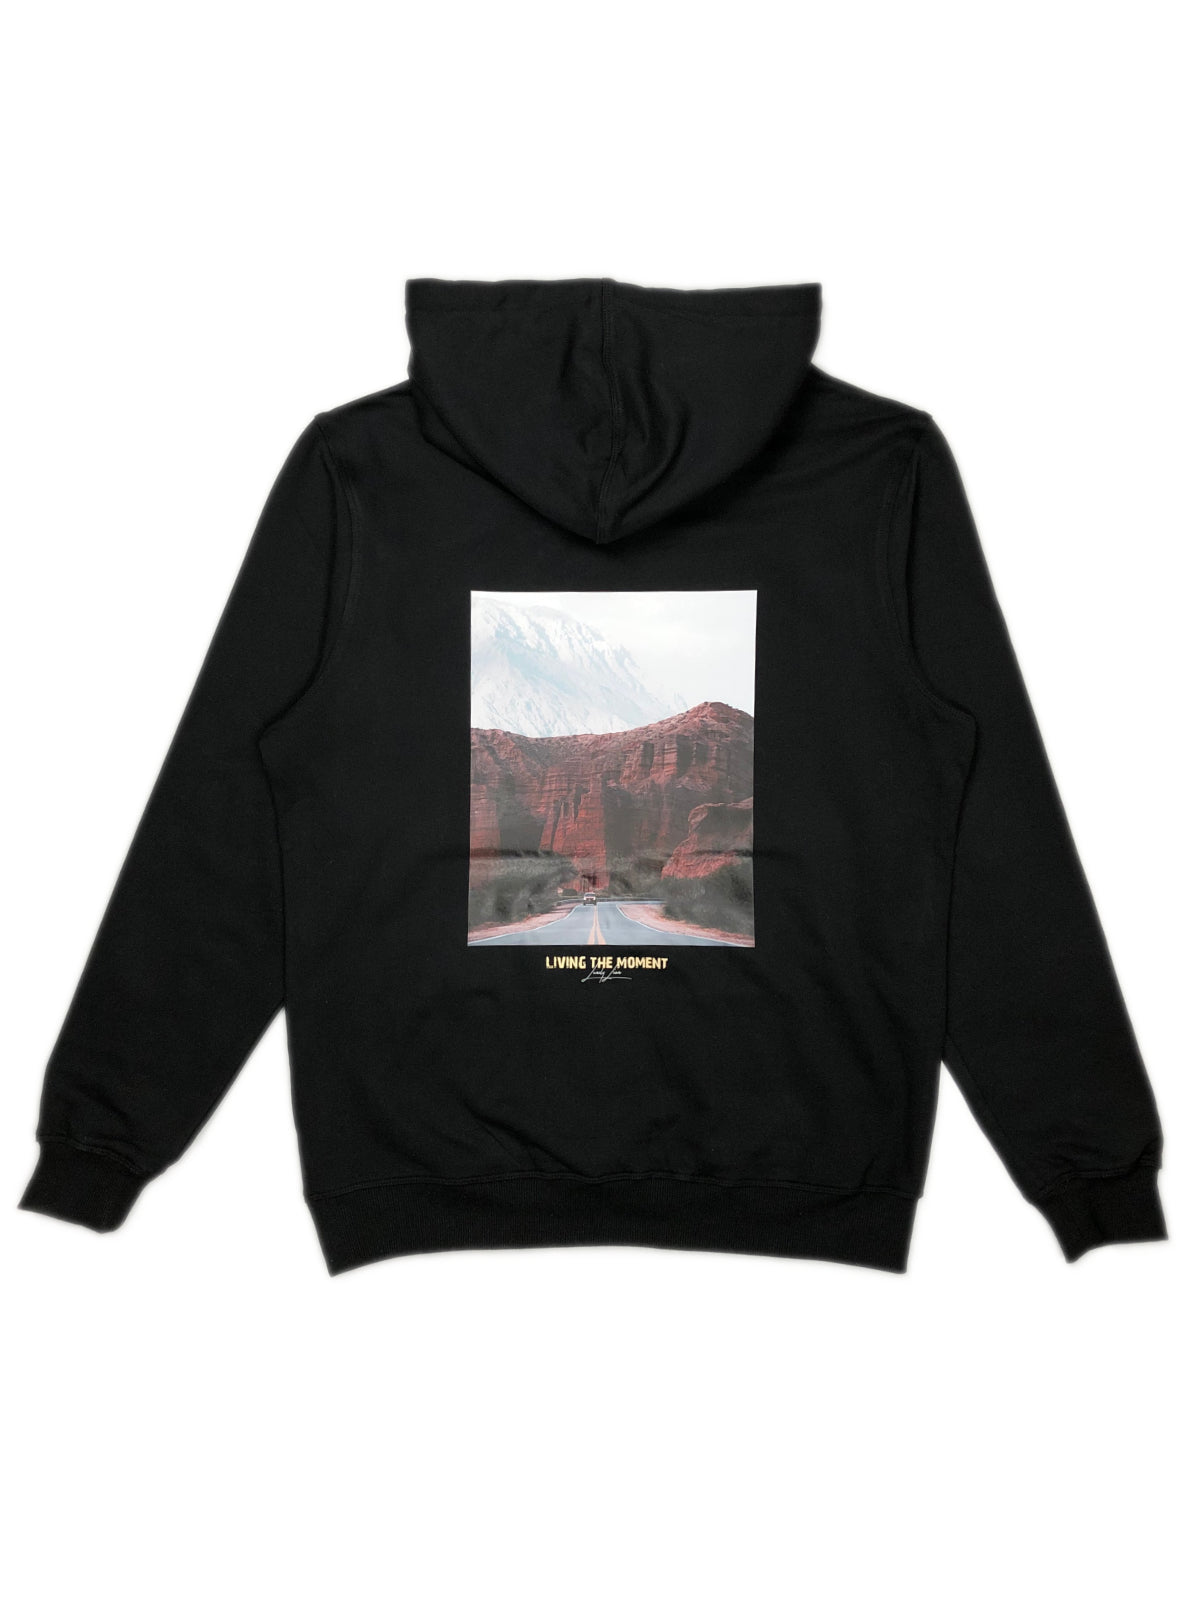 THE MOMENT HOODIE BLACK